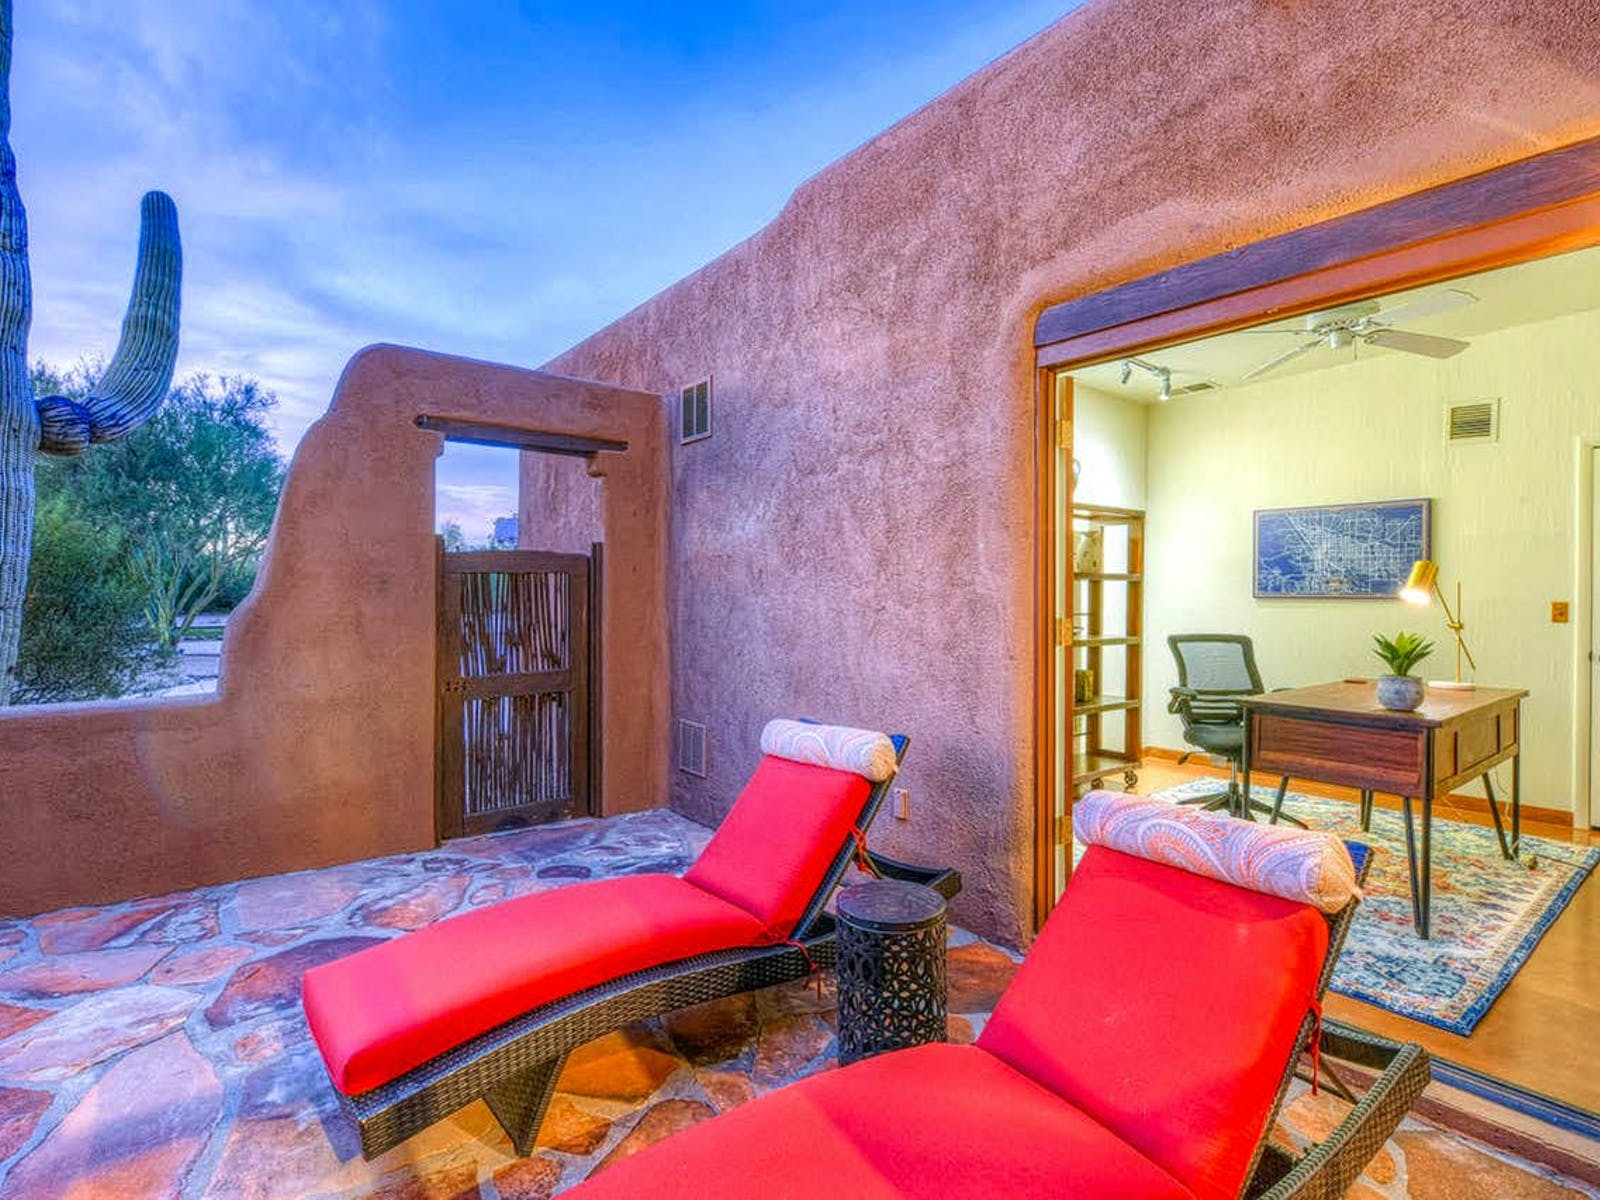 large cactus near vacation rental patio with red lounge chairs